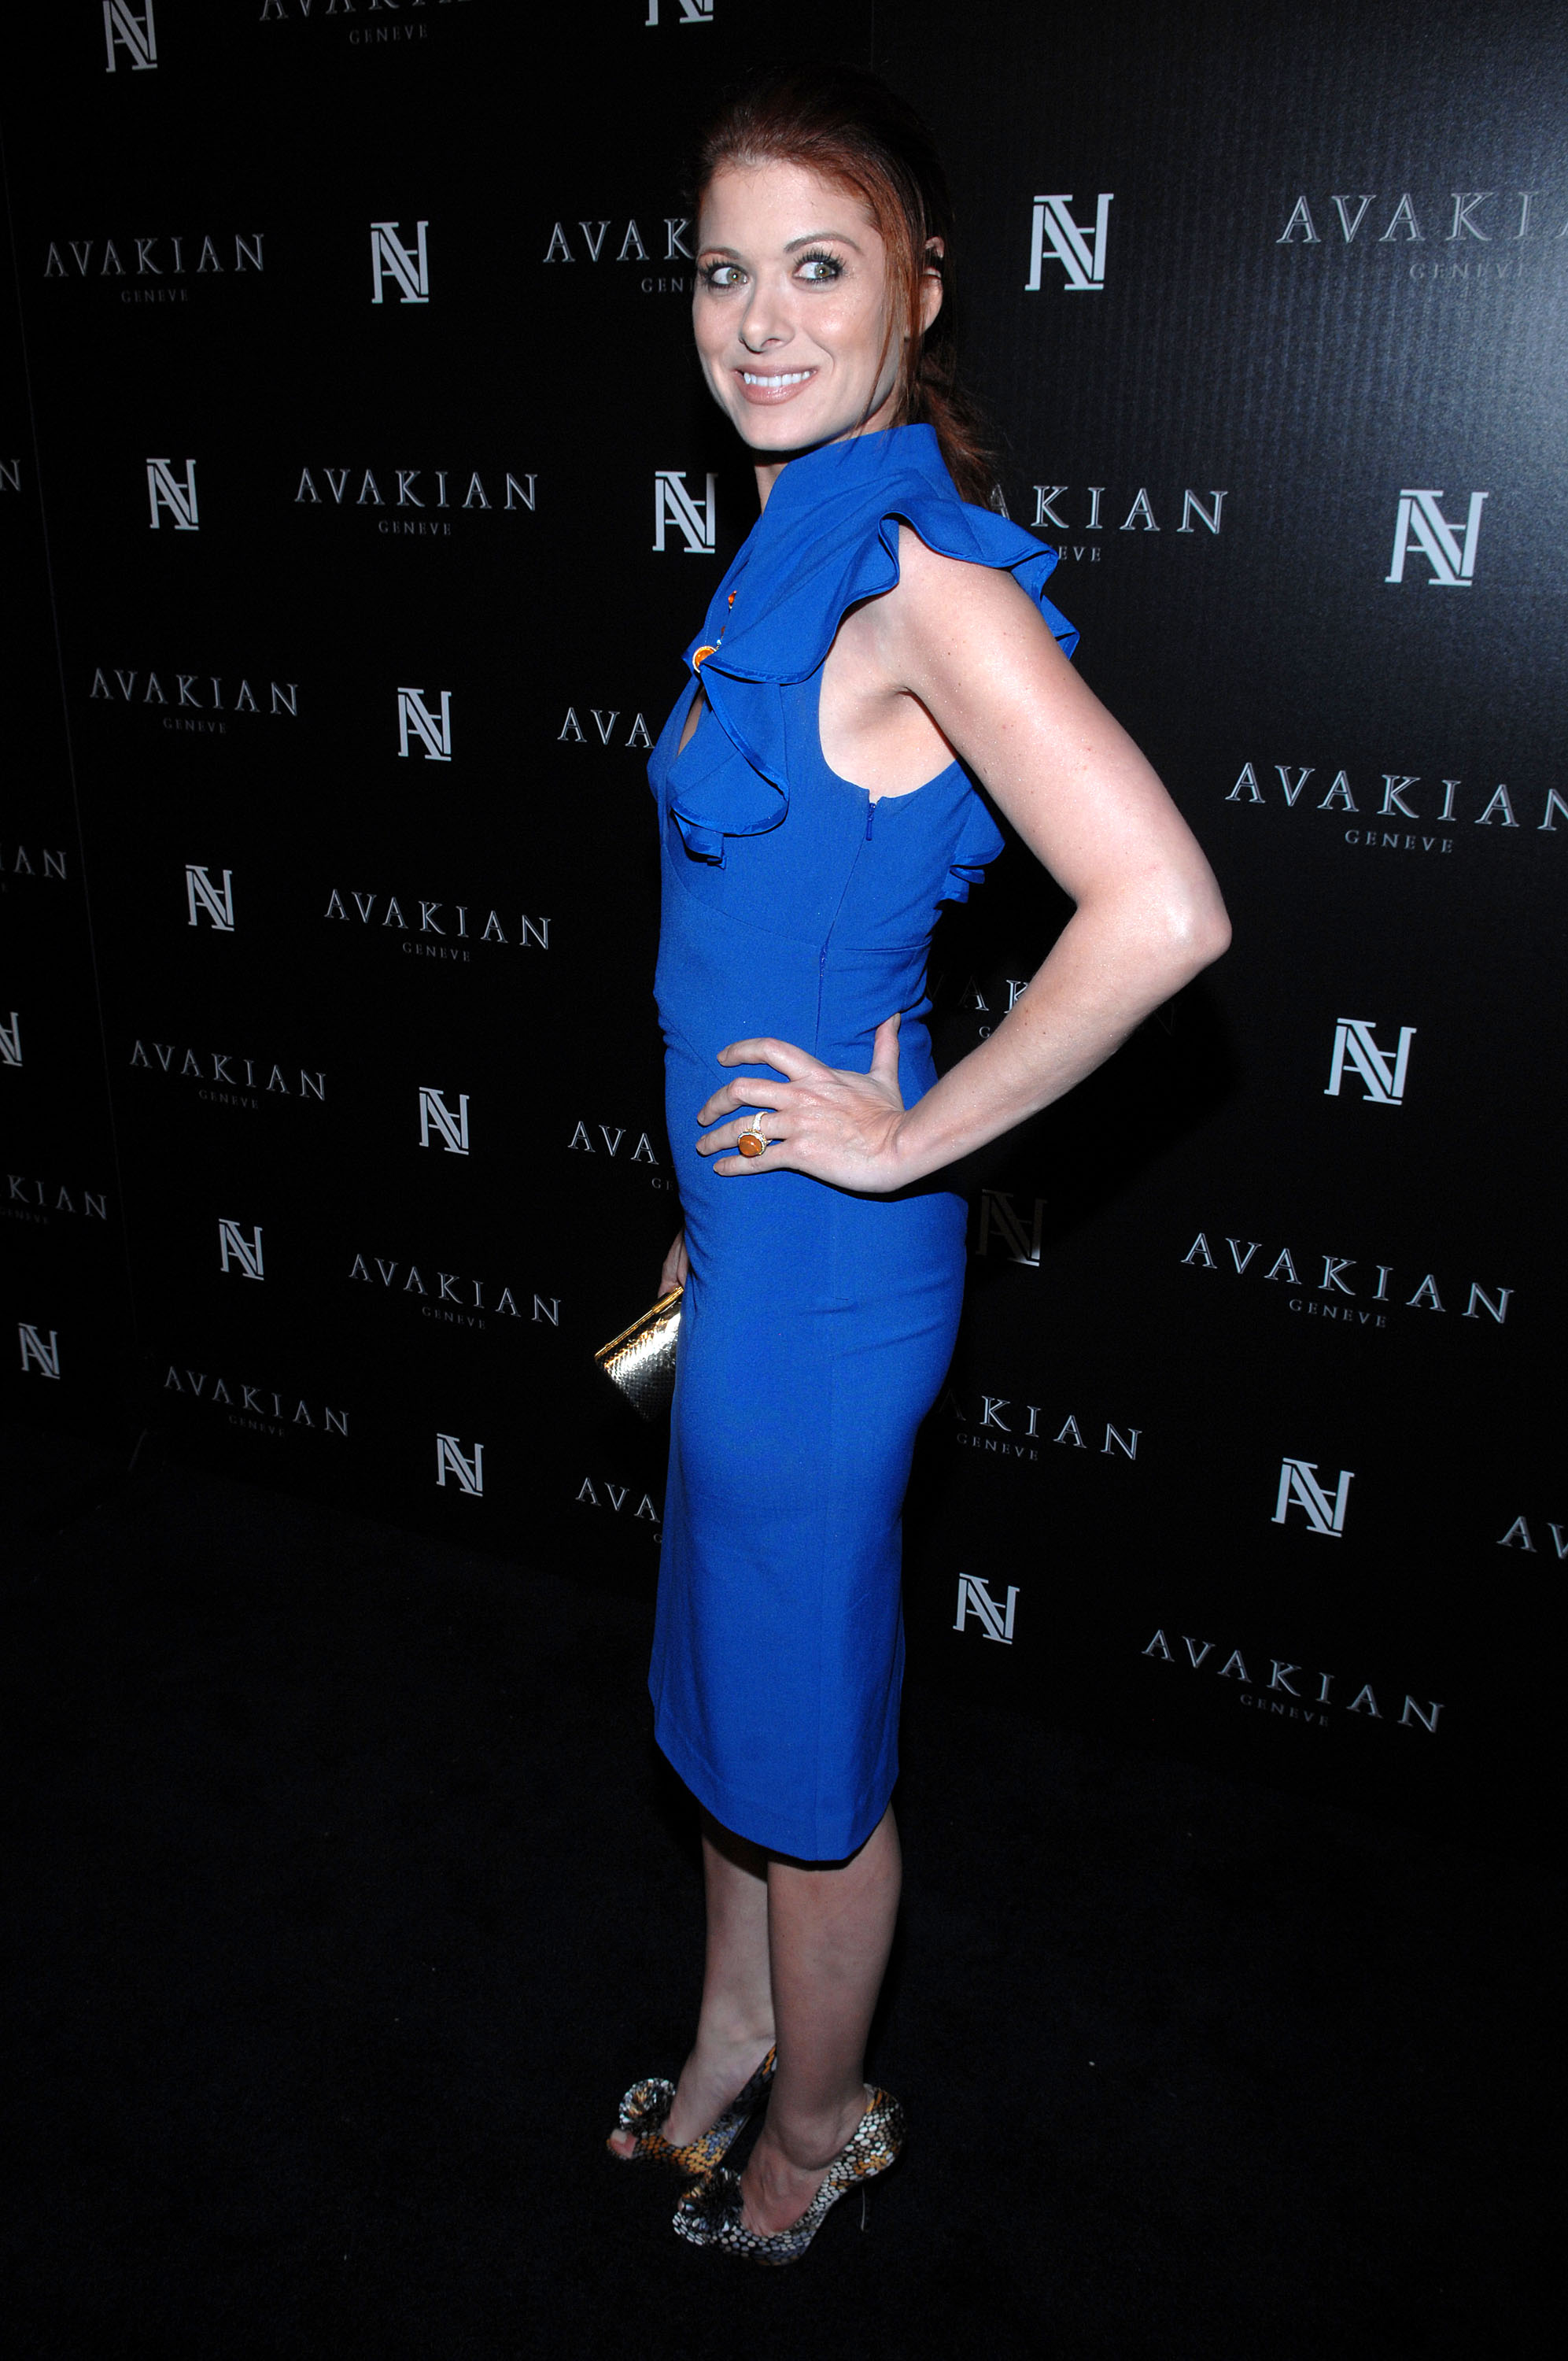 78338_Celebutopia-Debra_Messing4Avakian_Beverly_Hills_Boutique_Celebration-08_122_55lo.jpg